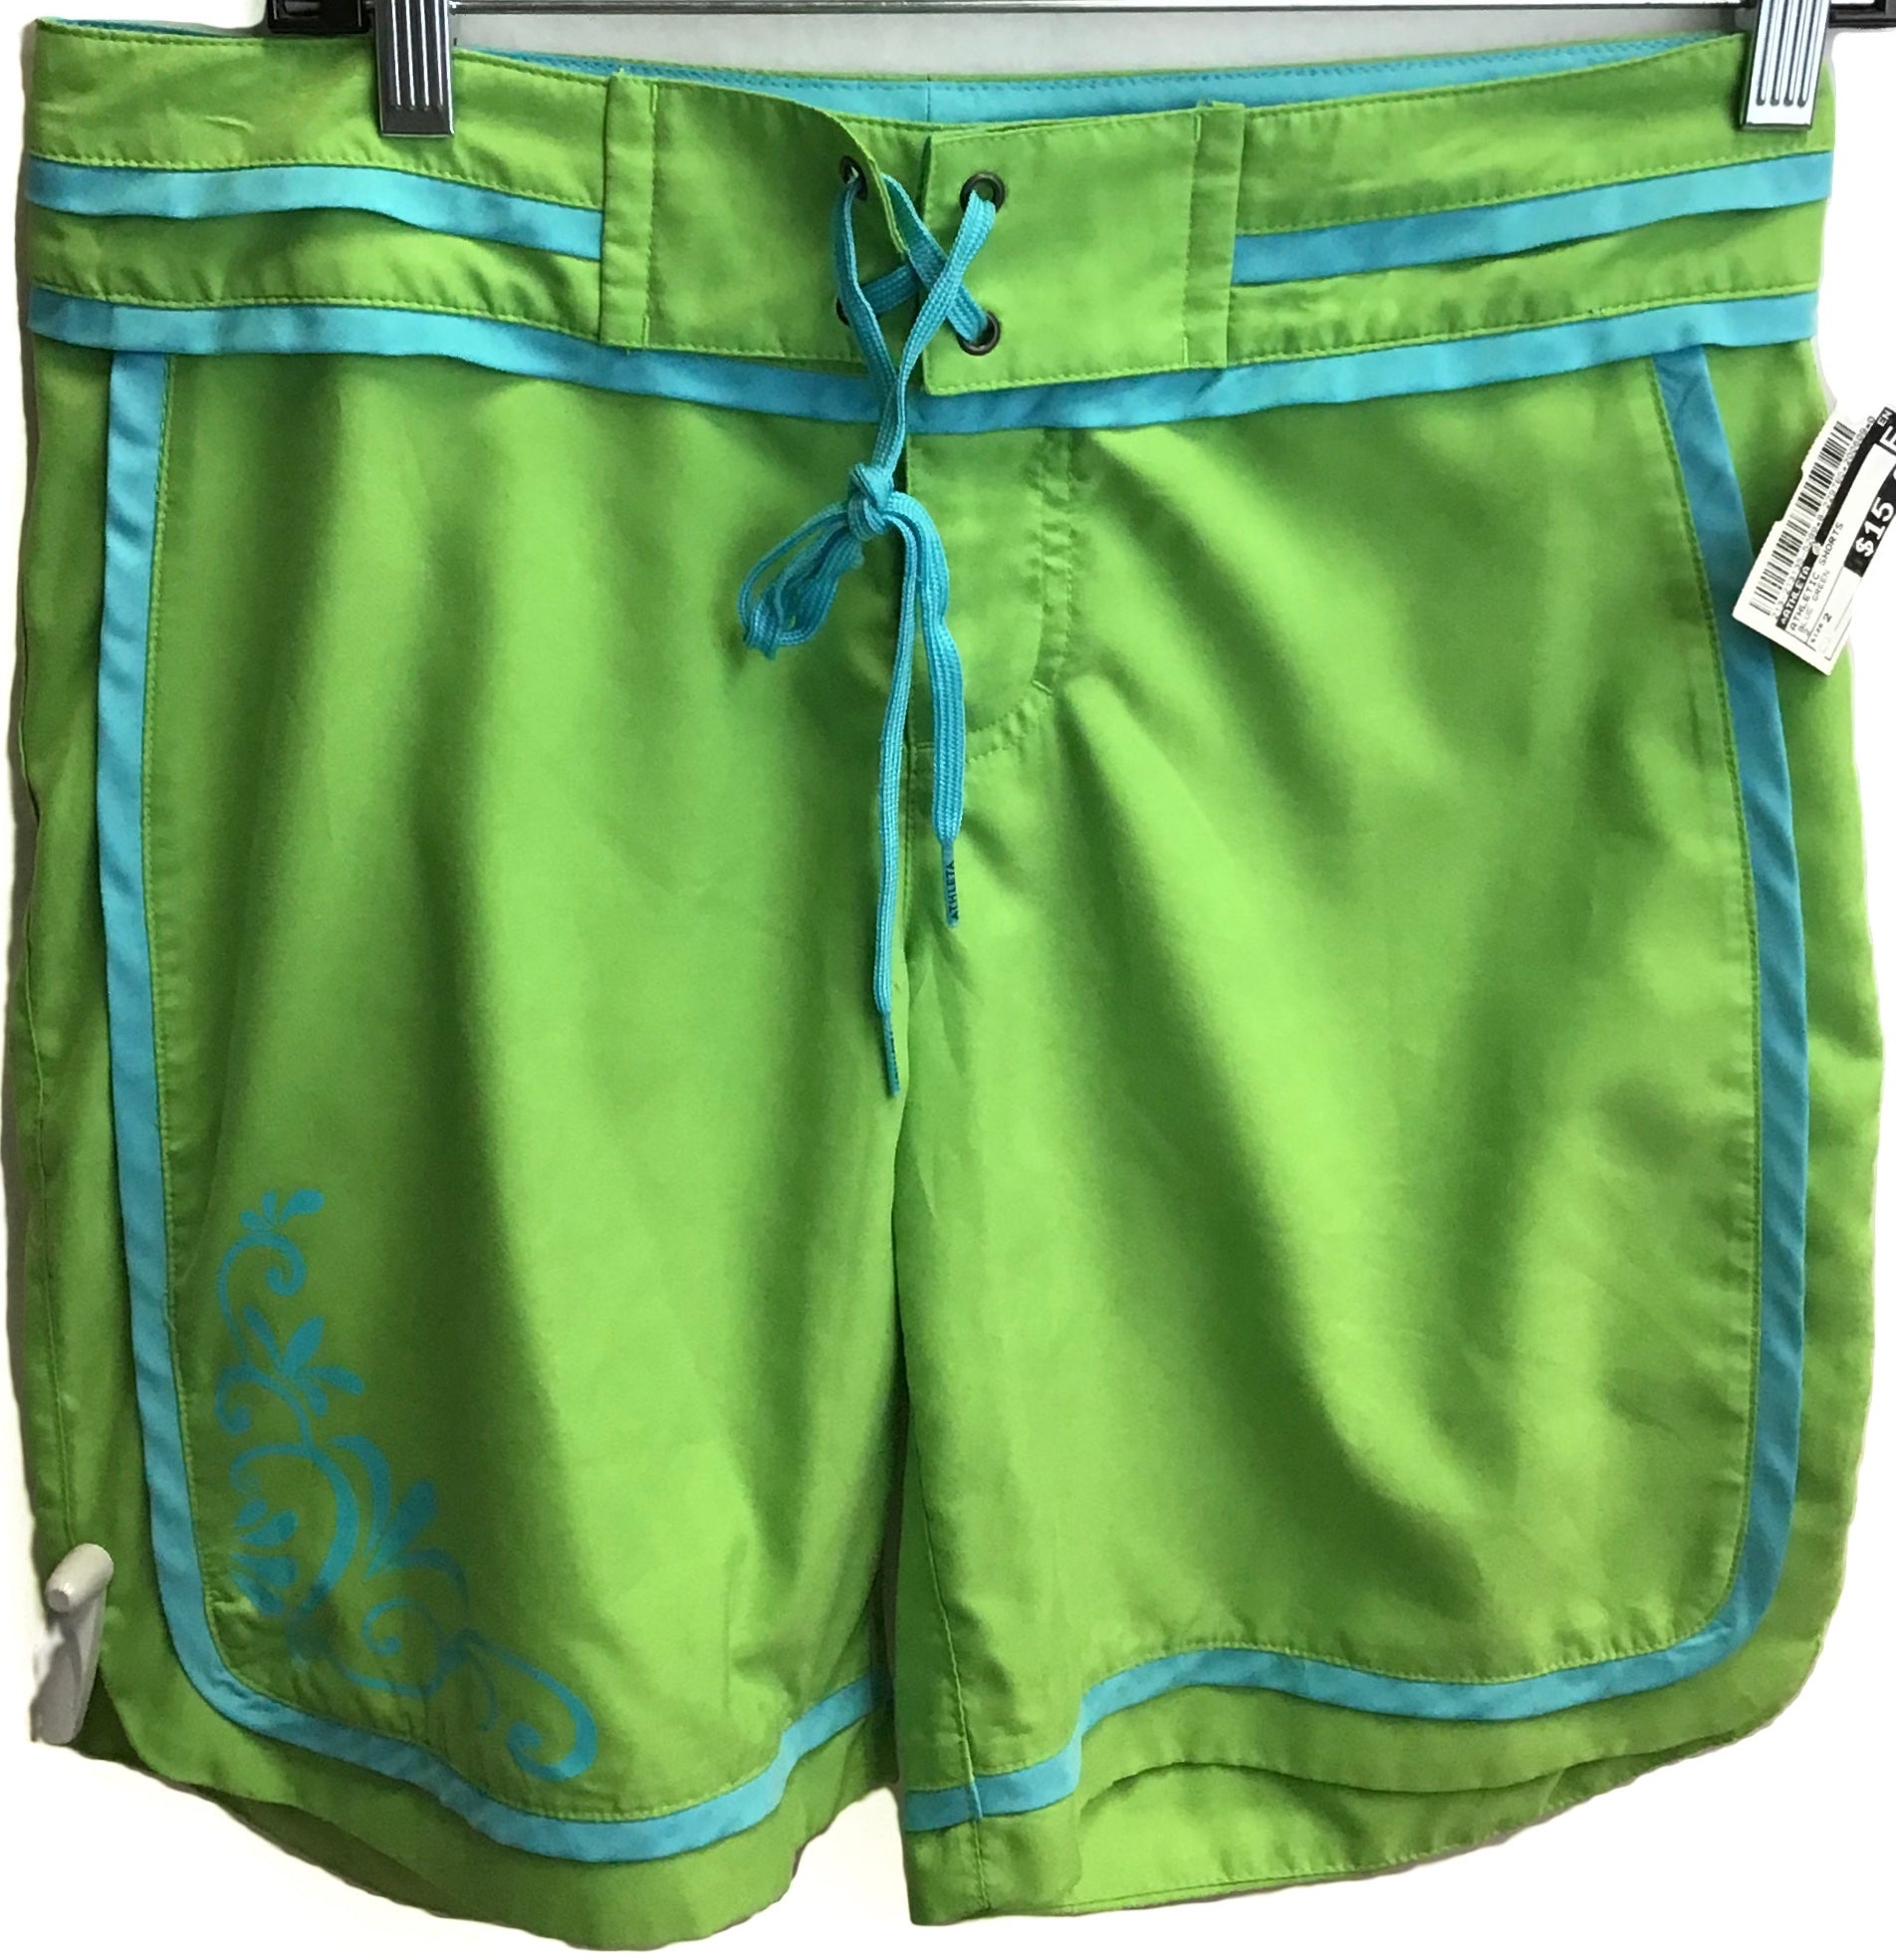 Primary Photo - BRAND: ATHLETA <BR>STYLE: ATHLETIC SHORTS <BR>COLOR: BLUE GREEN <BR>SIZE: 2 <BR>SKU: 213-213135-5289